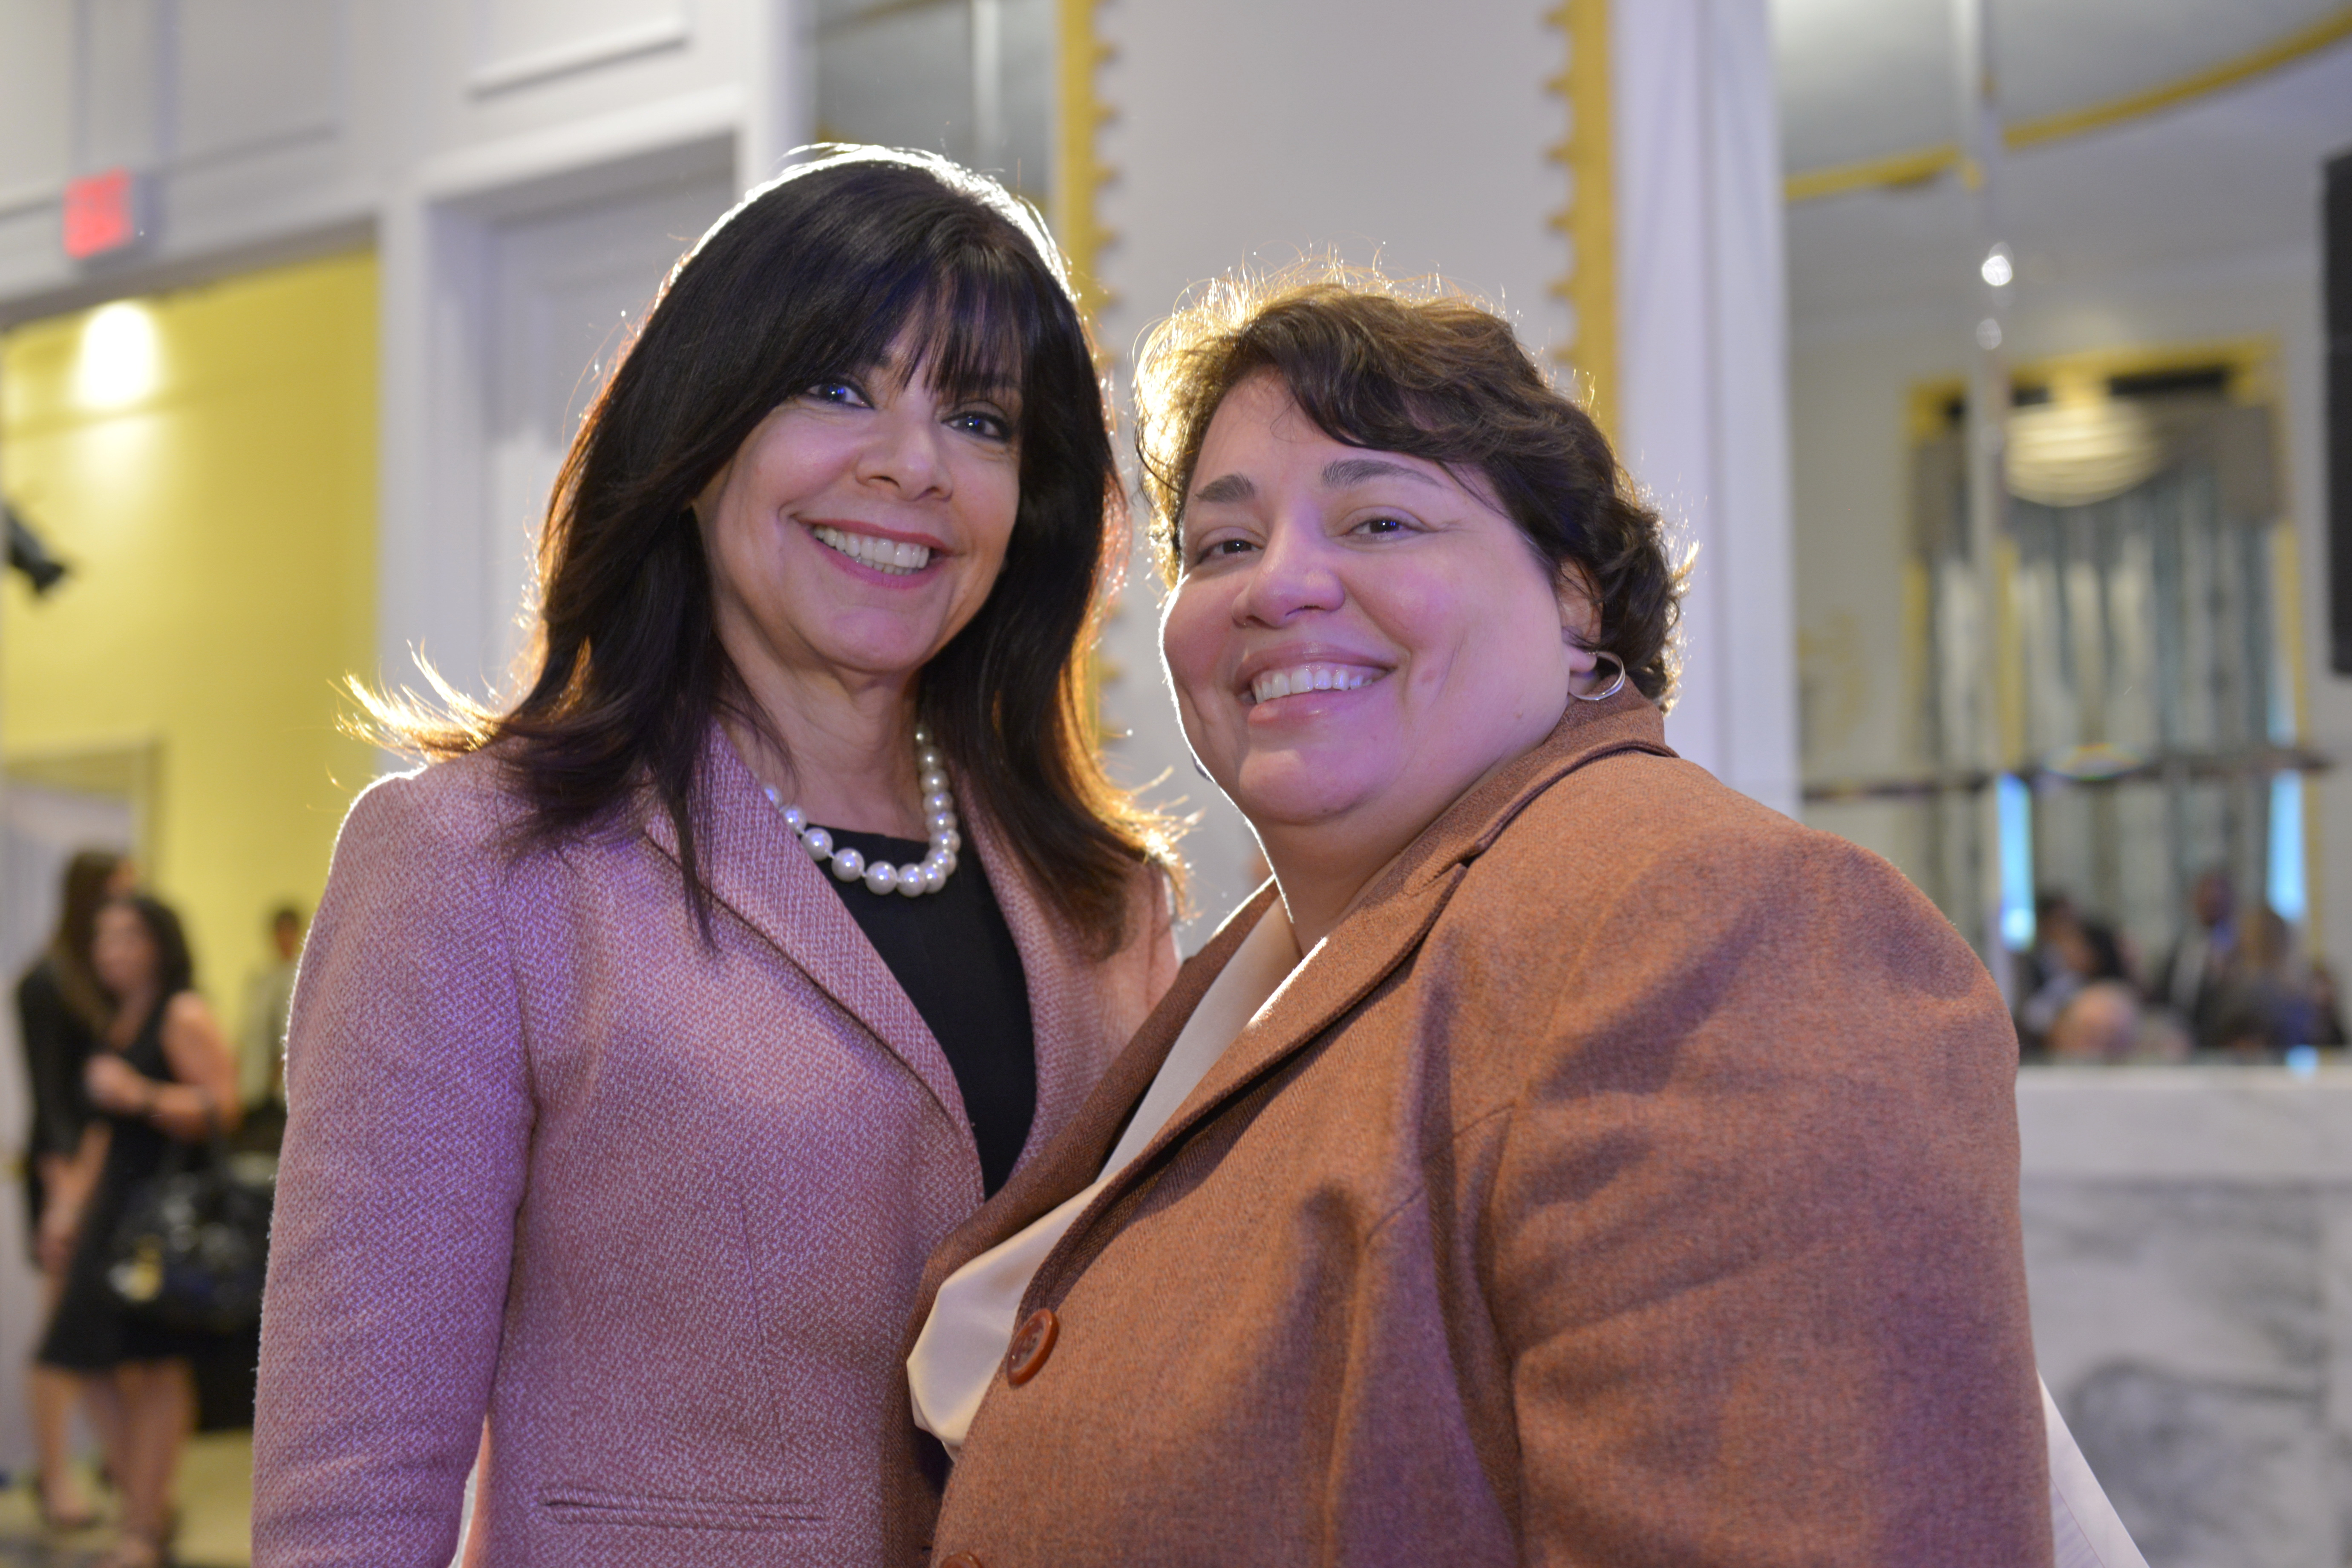 Partner and Collaborate - Maria Harper-Marinick and Deborah Santiago